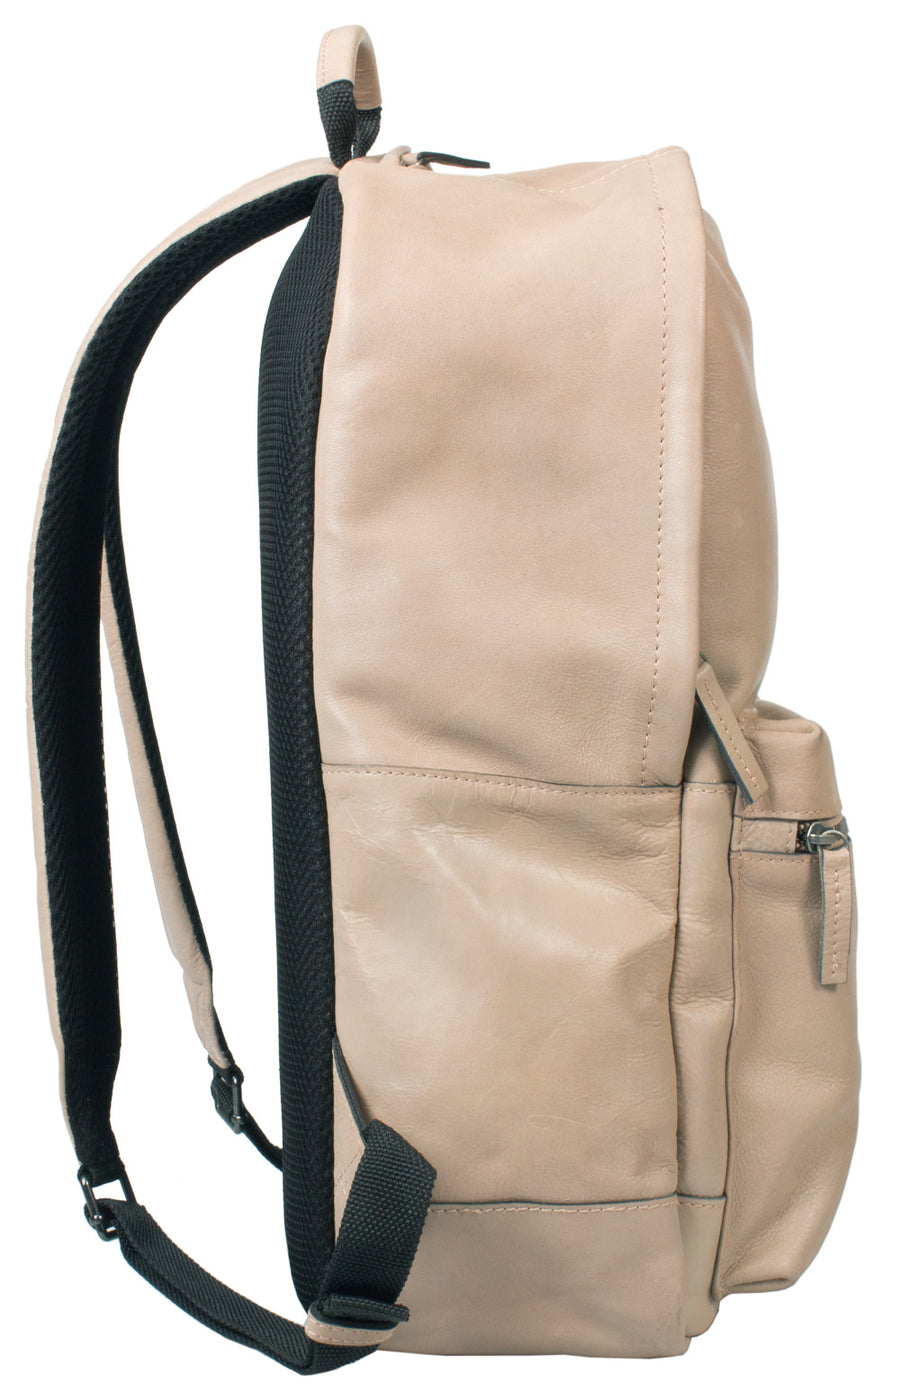 HIDEONLINE BONE/ BEIGE REAL LEATHER LAPTOP BACKPACK